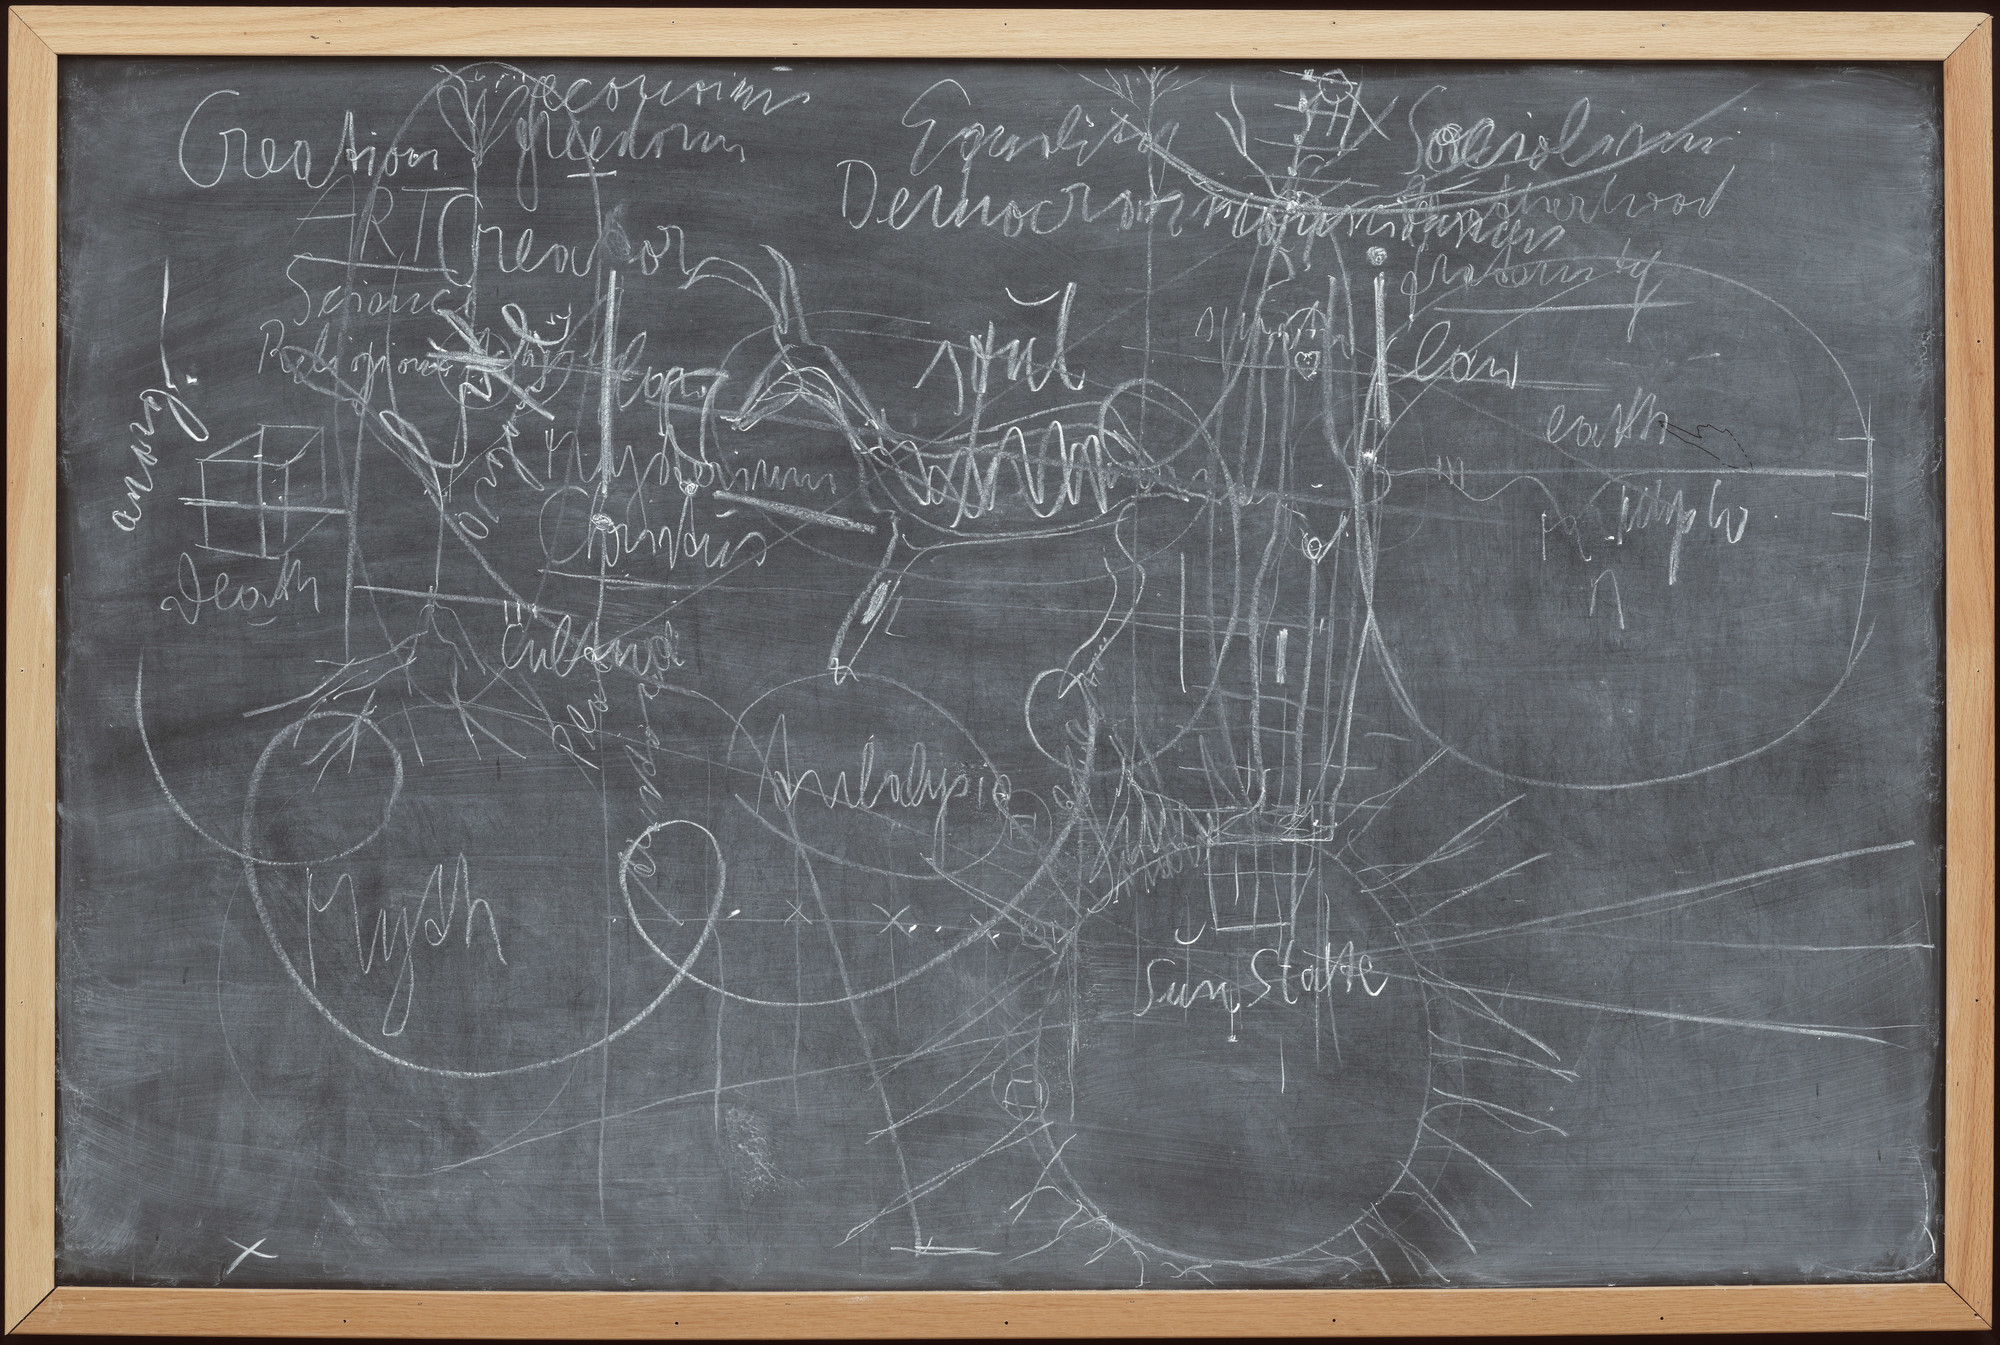 Joseph Beuys. Untitled (Sun State). 1974. Chalk on painted board with wood frame, 47 1⁄2 × 7 11/8″ (120.7 × 180.7 cm). The Museum of Modern Art. Gift of Abby Aldrich Rockefeller (by exchange) and acquired through the Lillie P. Bliss Bequest (by exchange). © 2007 Artists Rights Society (ARS), New York/VG Bild-Kunst, Bonn